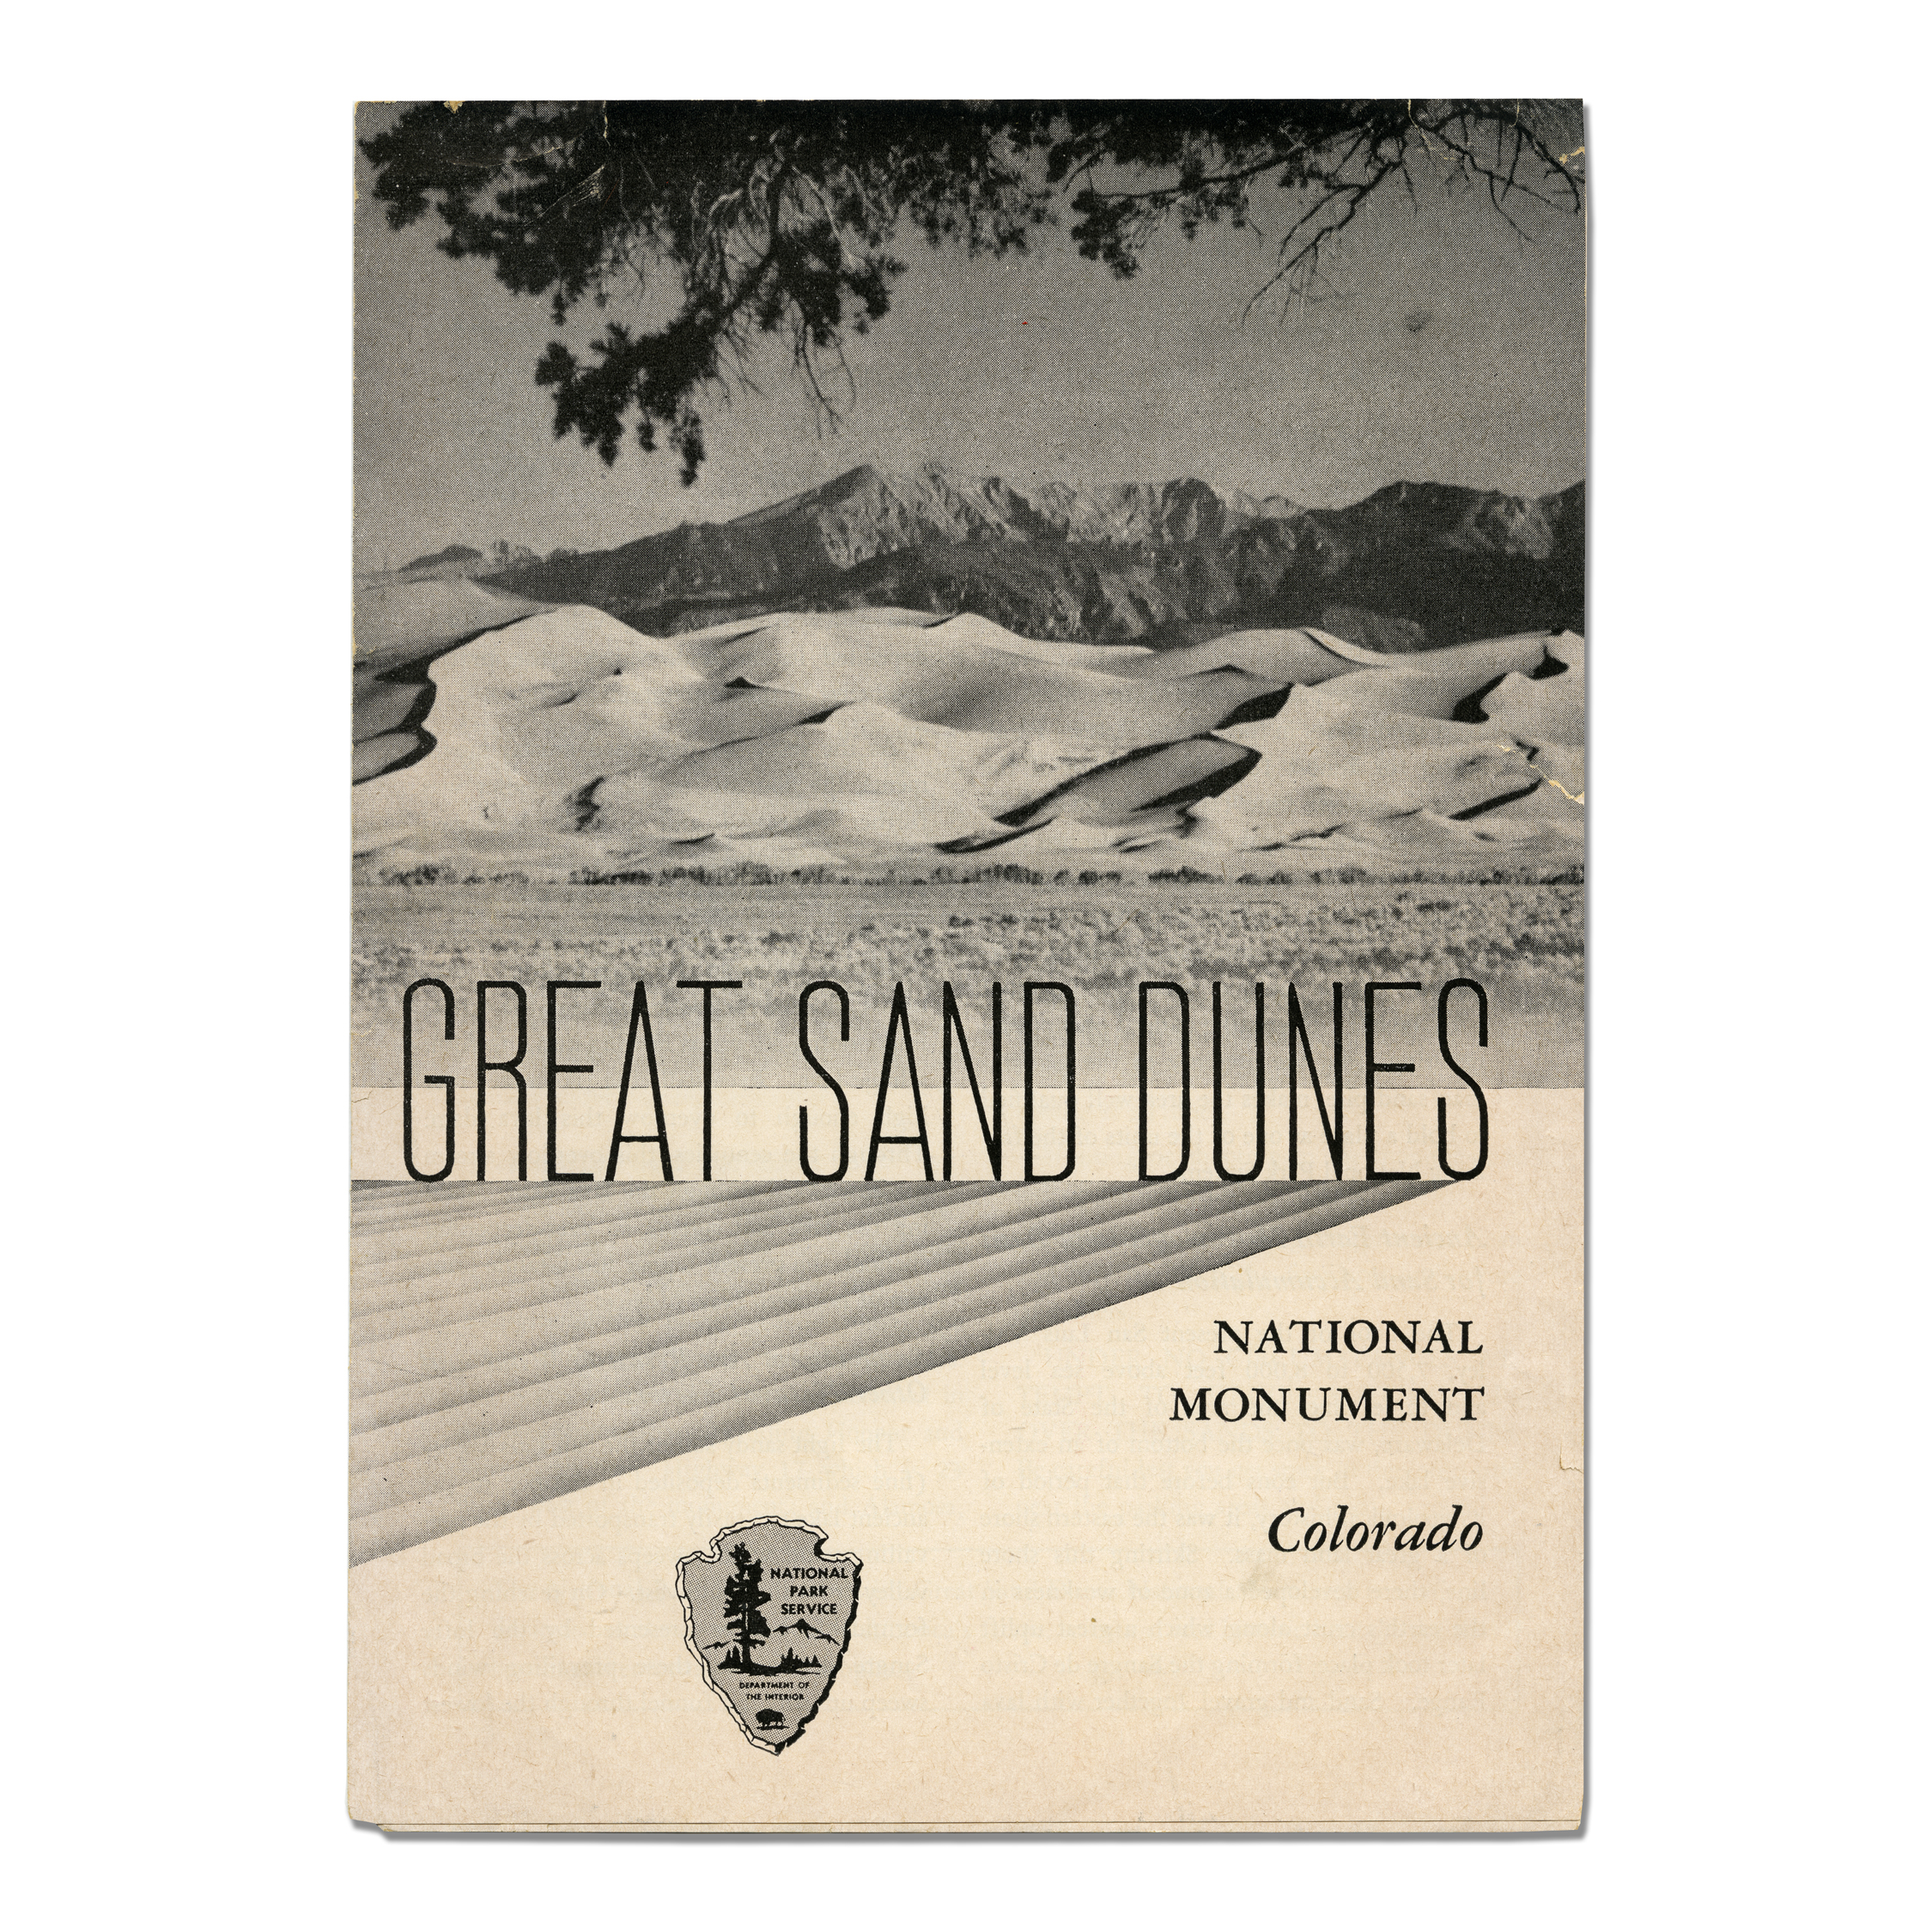 1953_great_sand_dunes_national_monument_brochure.jpg